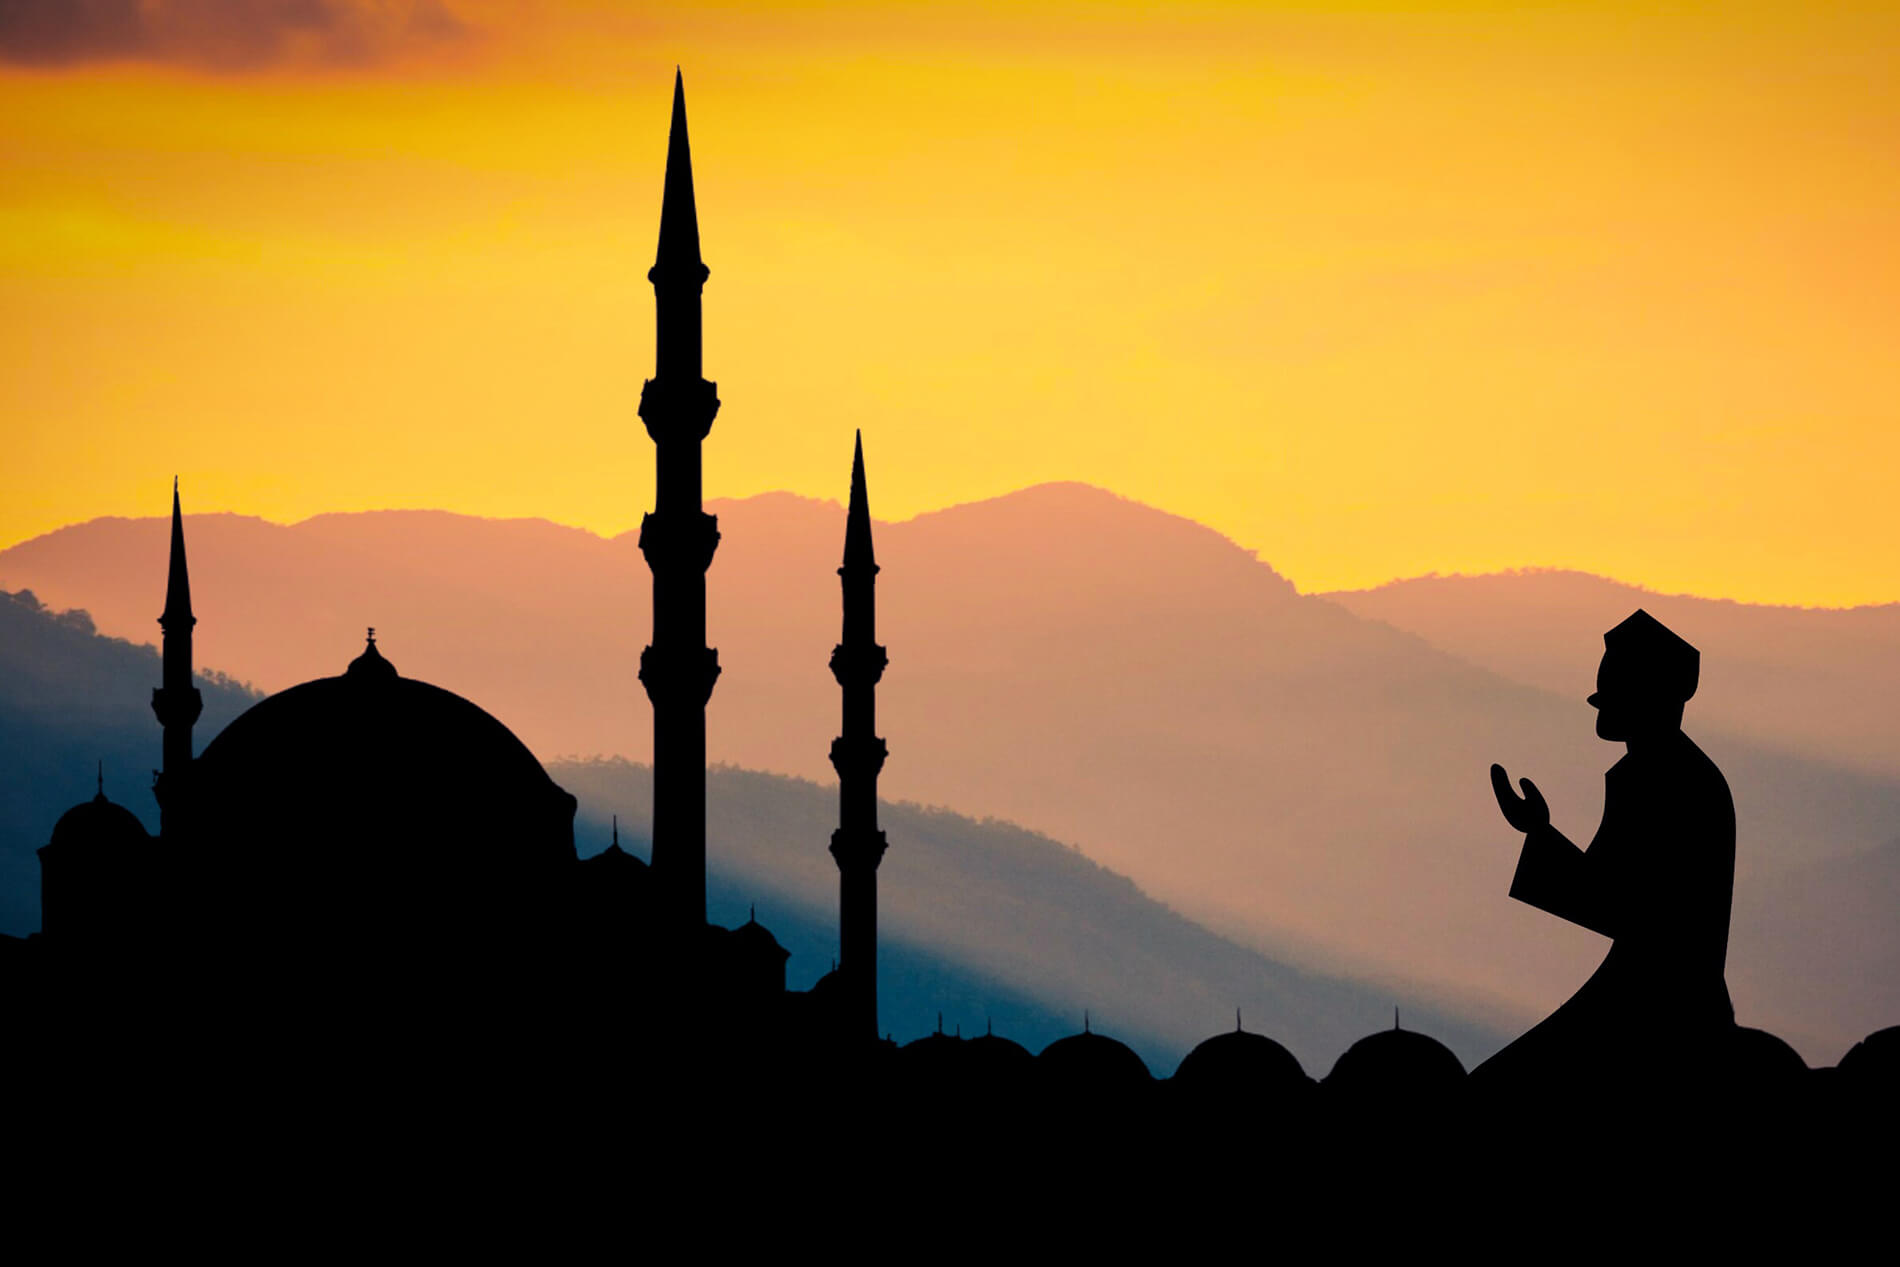 A Ramadan etiquette guide for non-Muslims